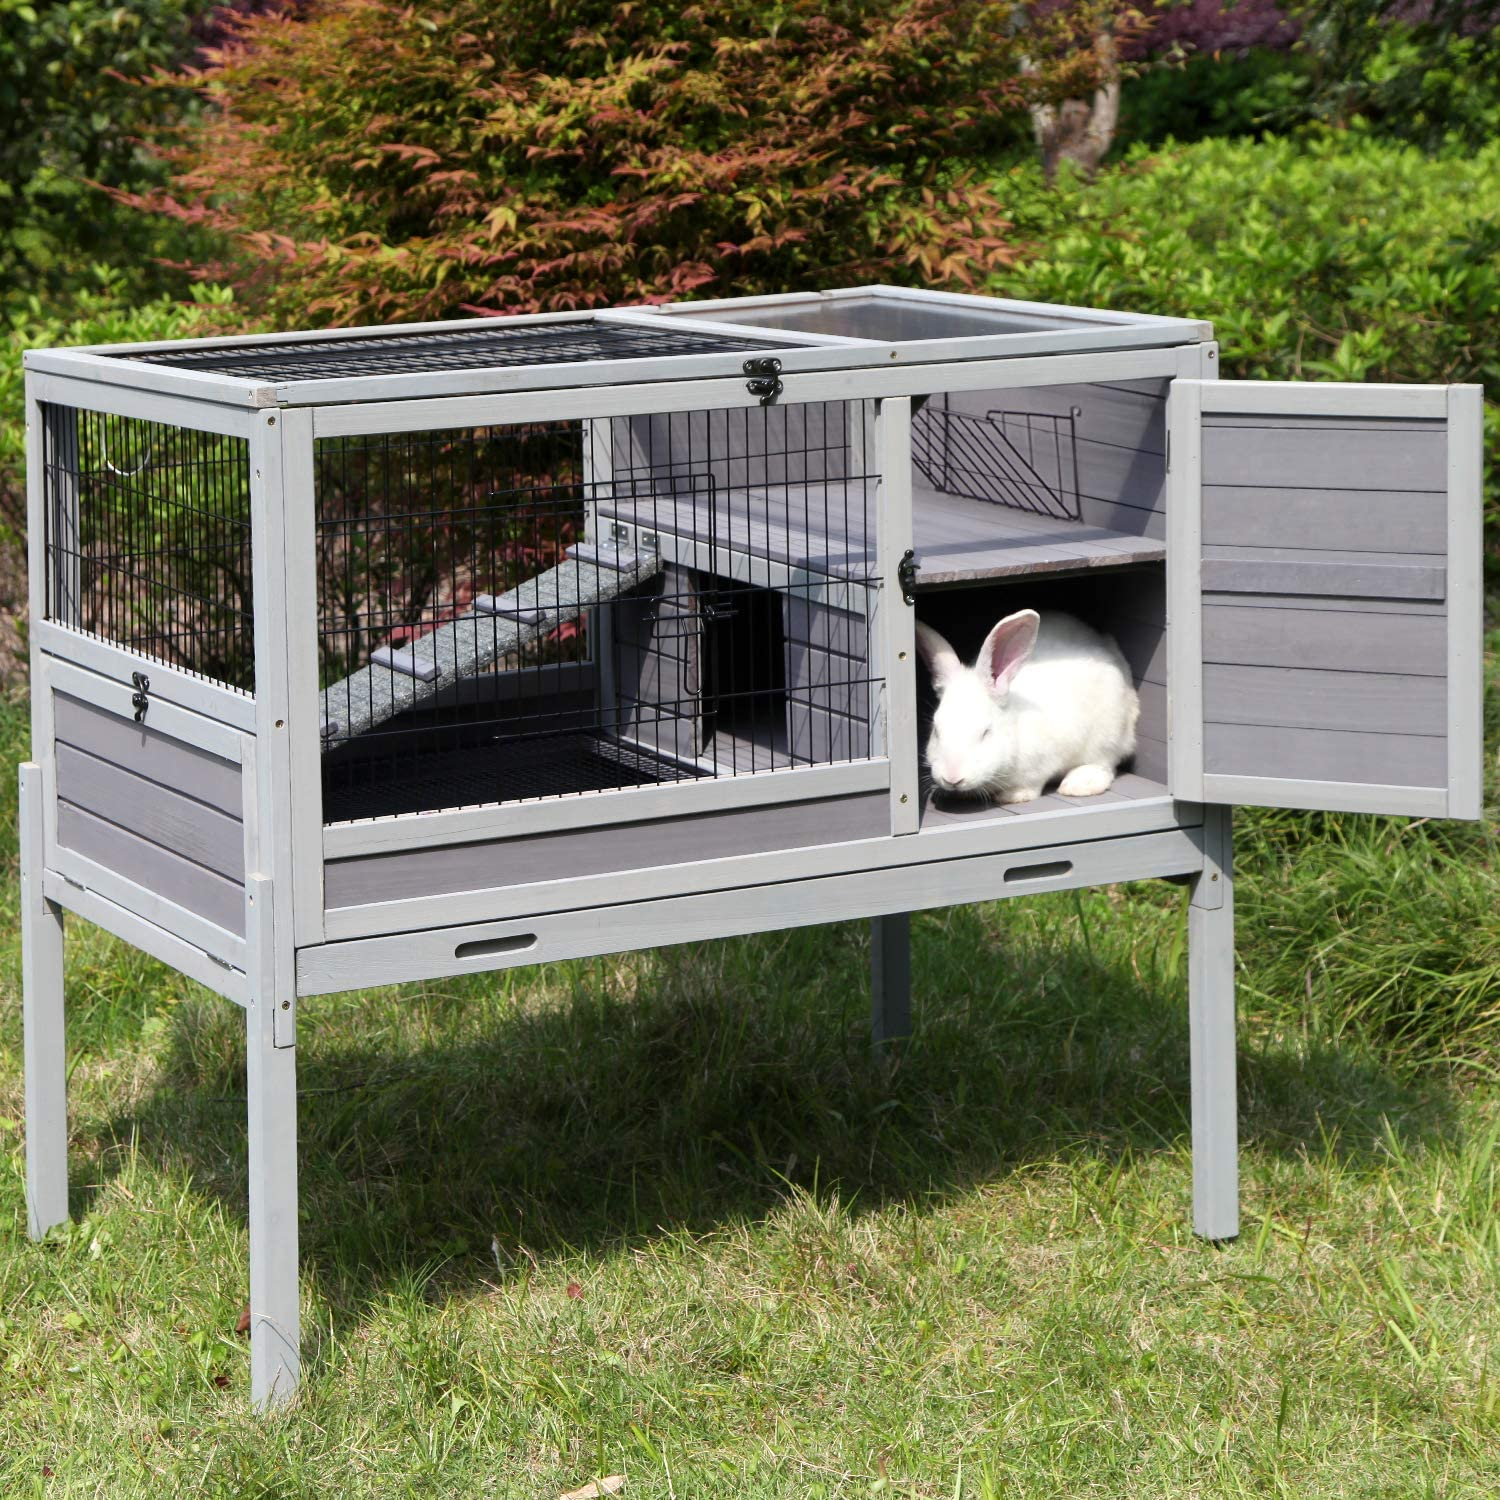 kadani cage rabbit hutch on wheels indoor and outdoor bunny hamster cage from storenvy accuweather